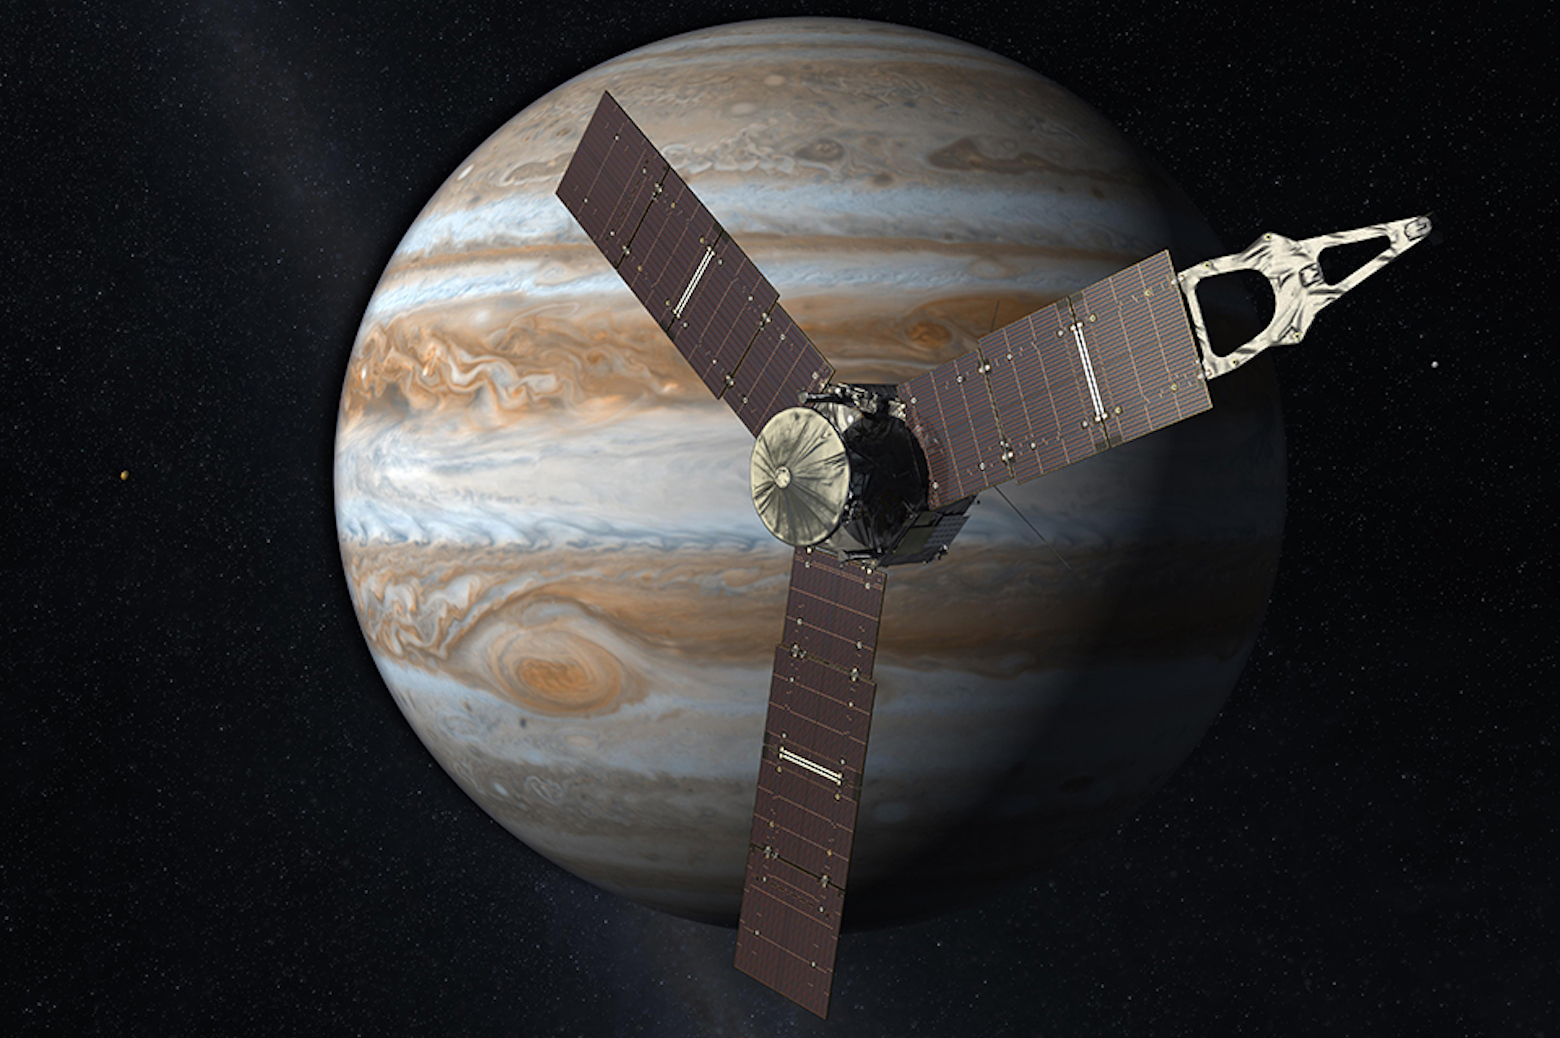 Photo of the Juno